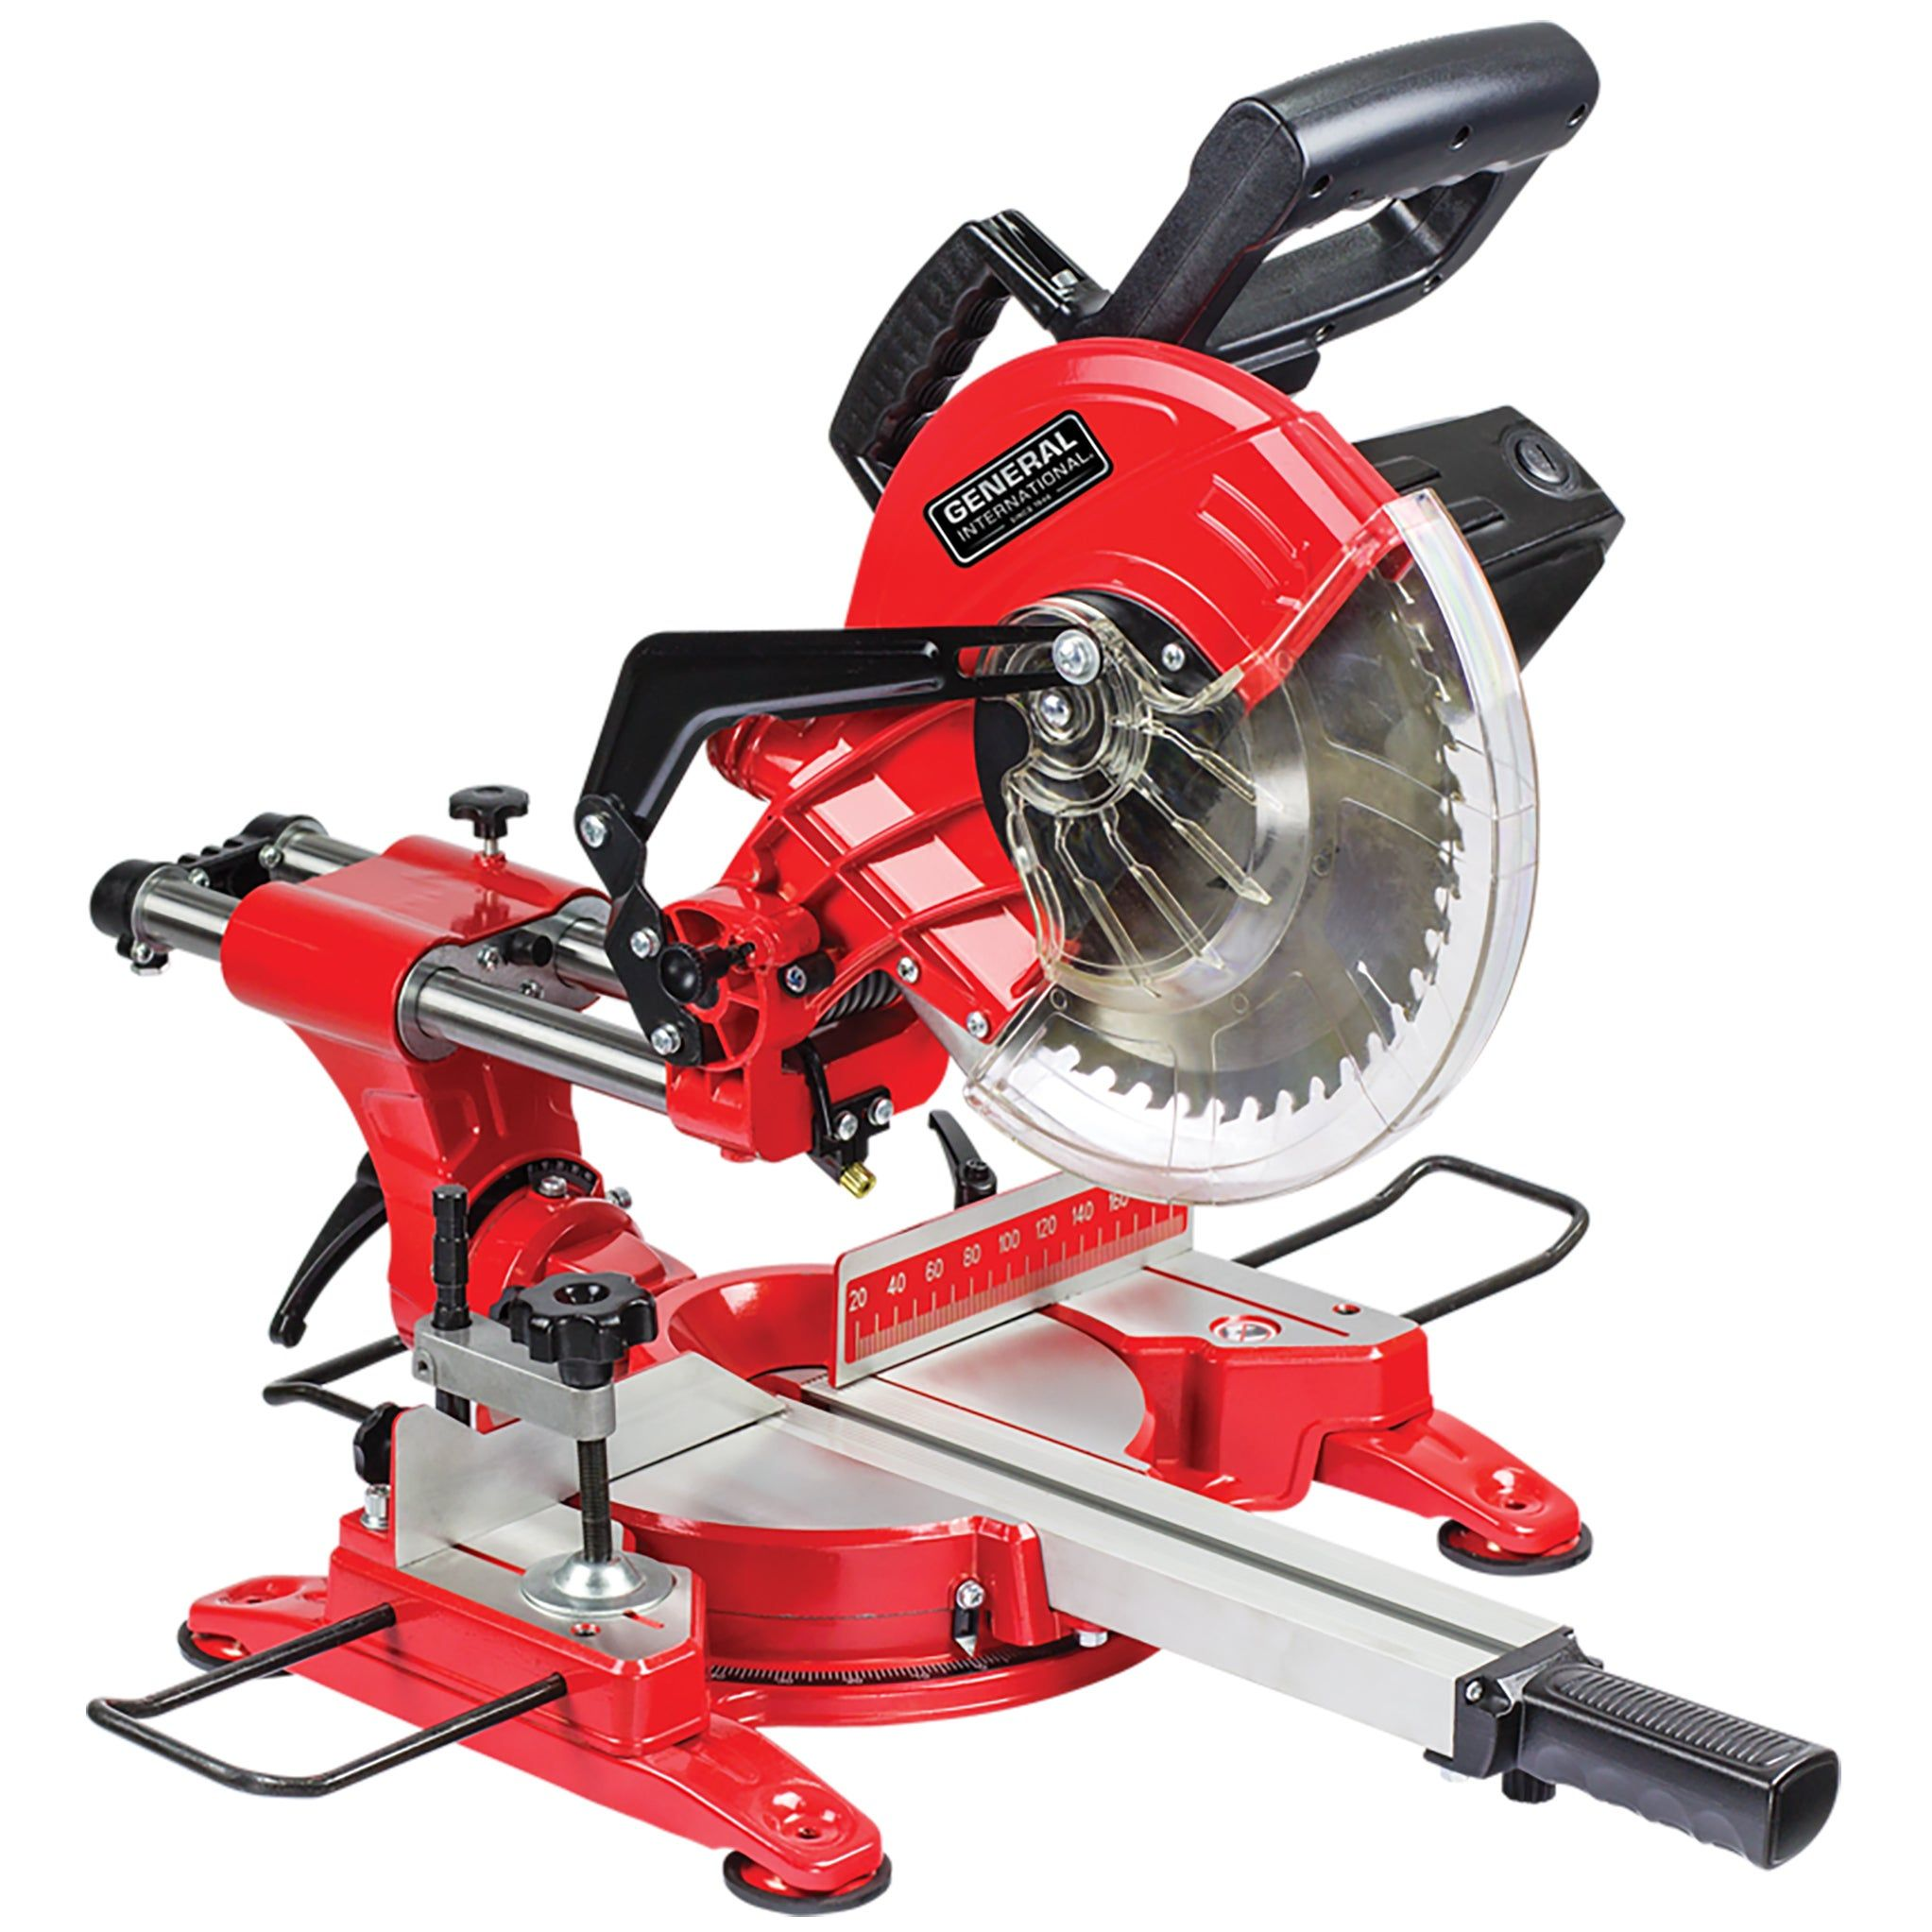 General International 10 Inch Sliding Miter Saw As Is Item Benchtop Tools Silver Sliding Mitre Saw Sliding Compound Miter Saw Miter Saw